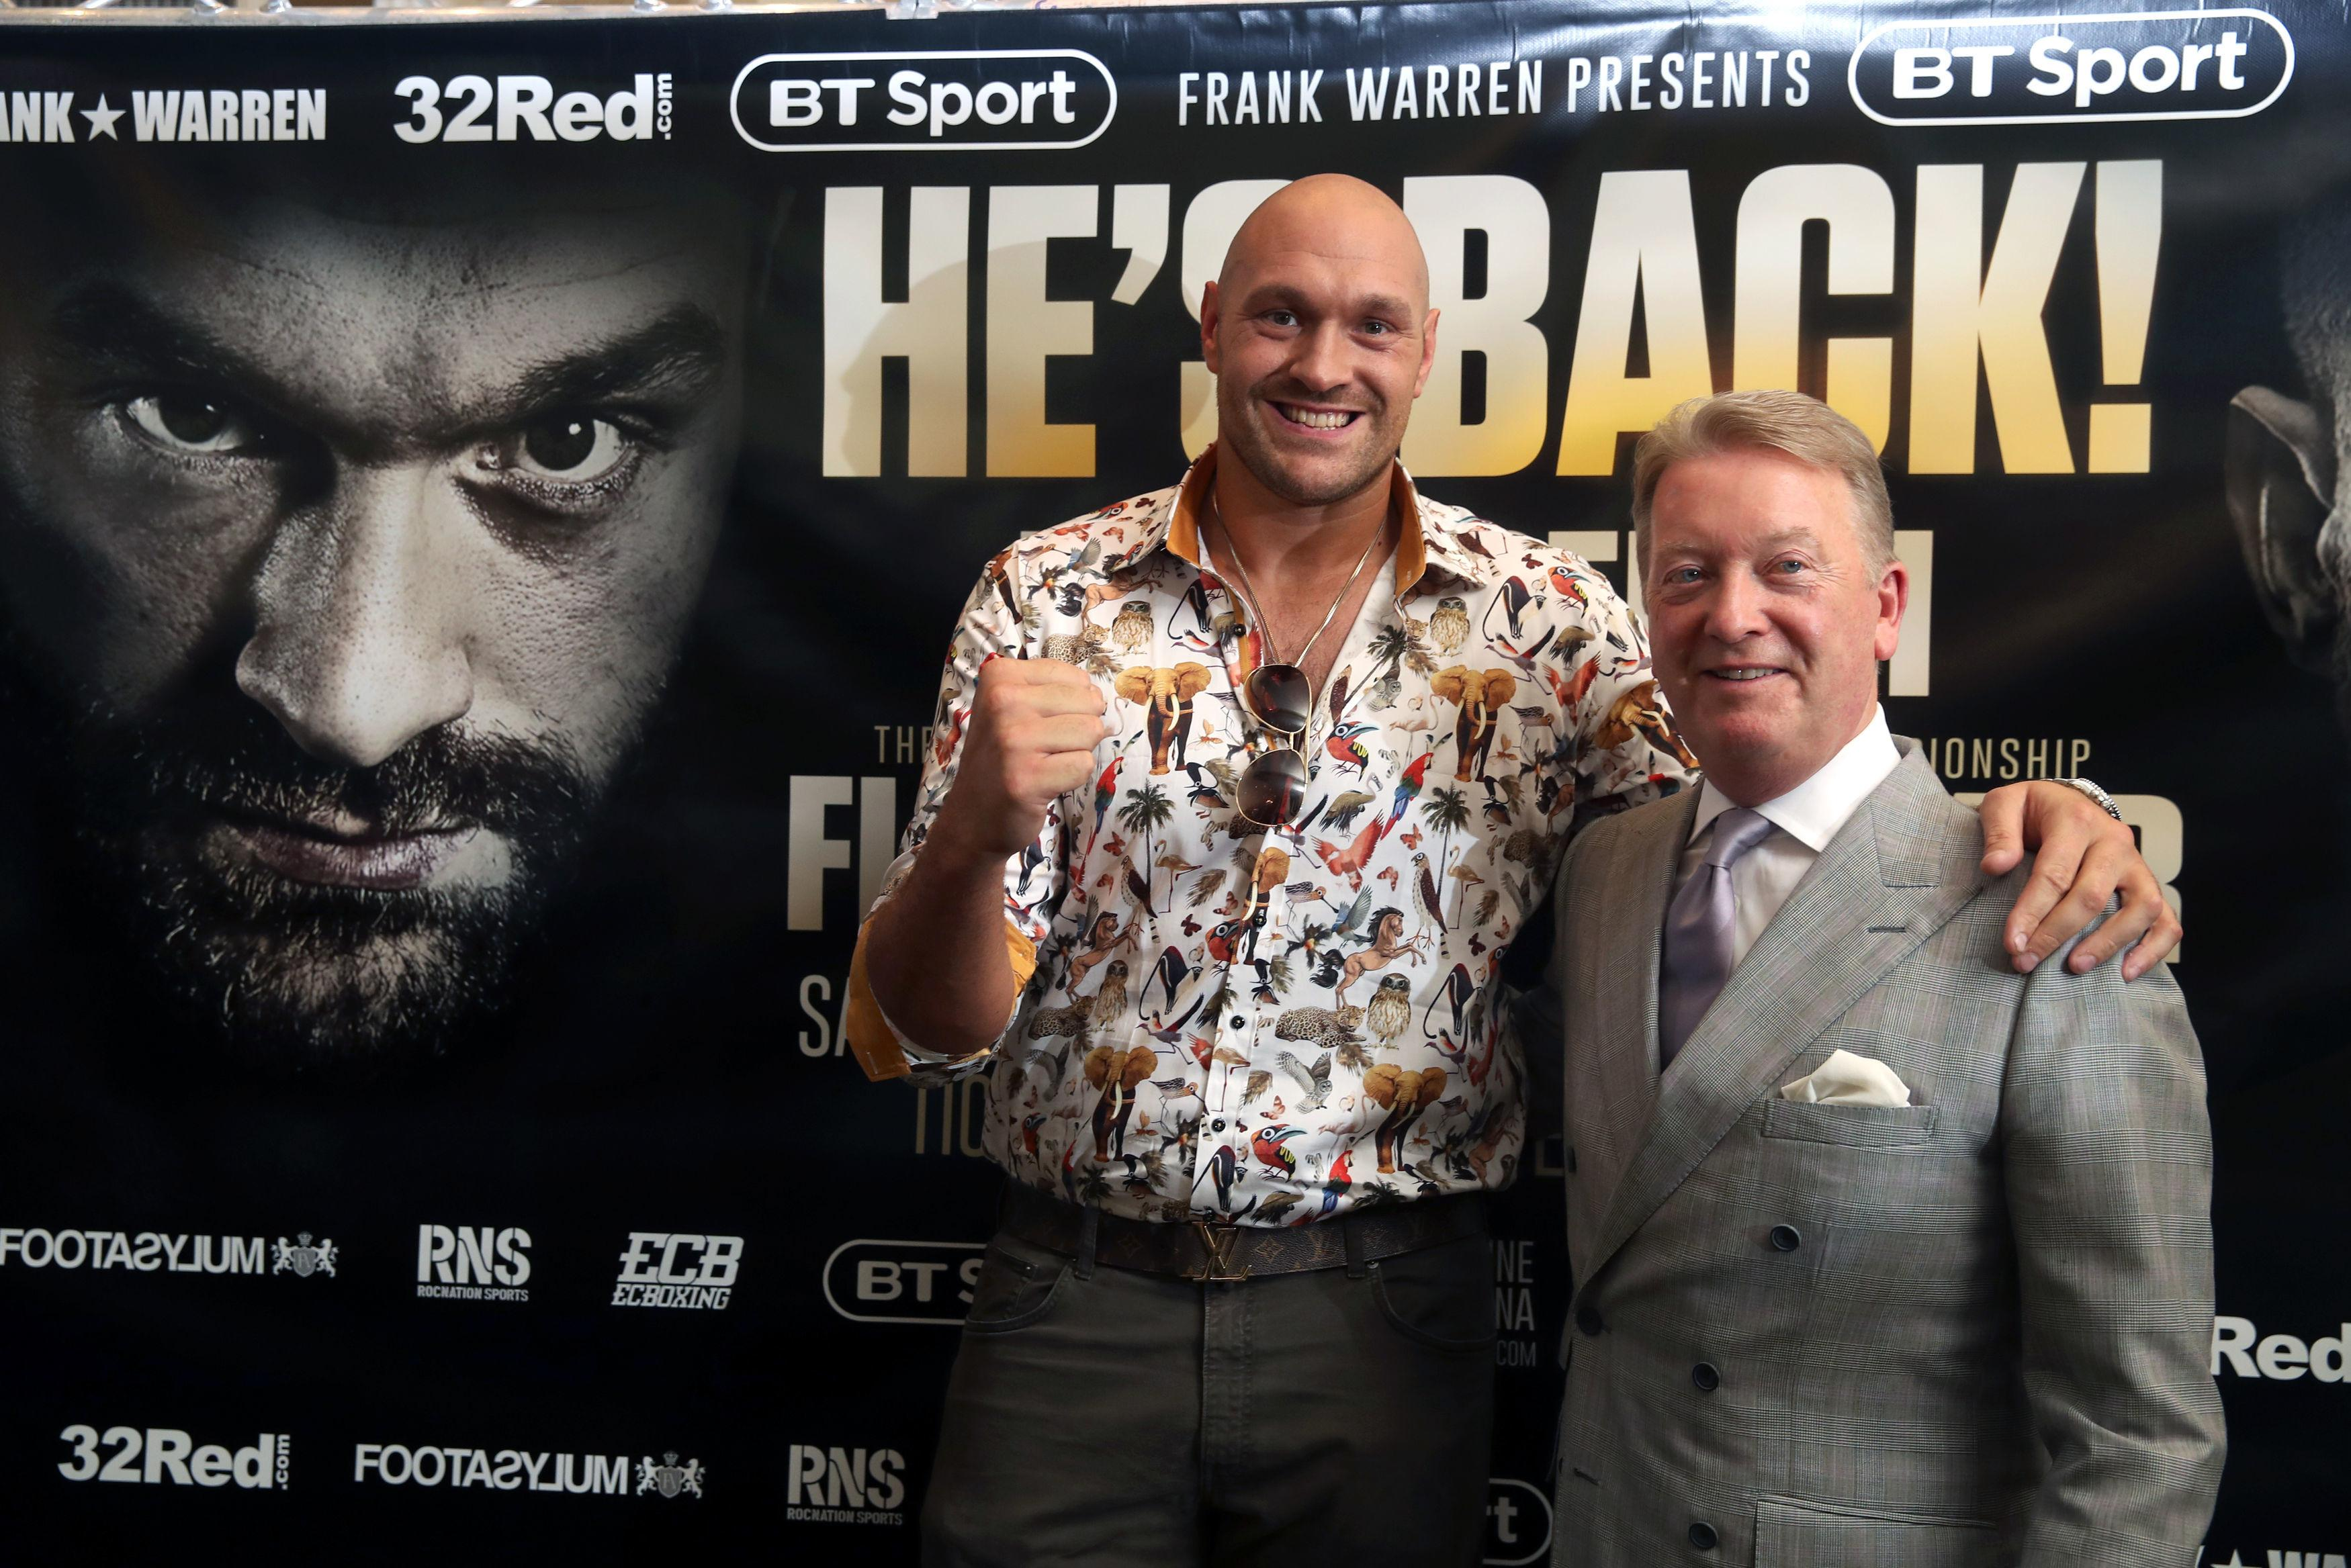 Frank Warren has sensationally revealed he wants Tyson Fury to fight Deontay Wilder before the end of the year